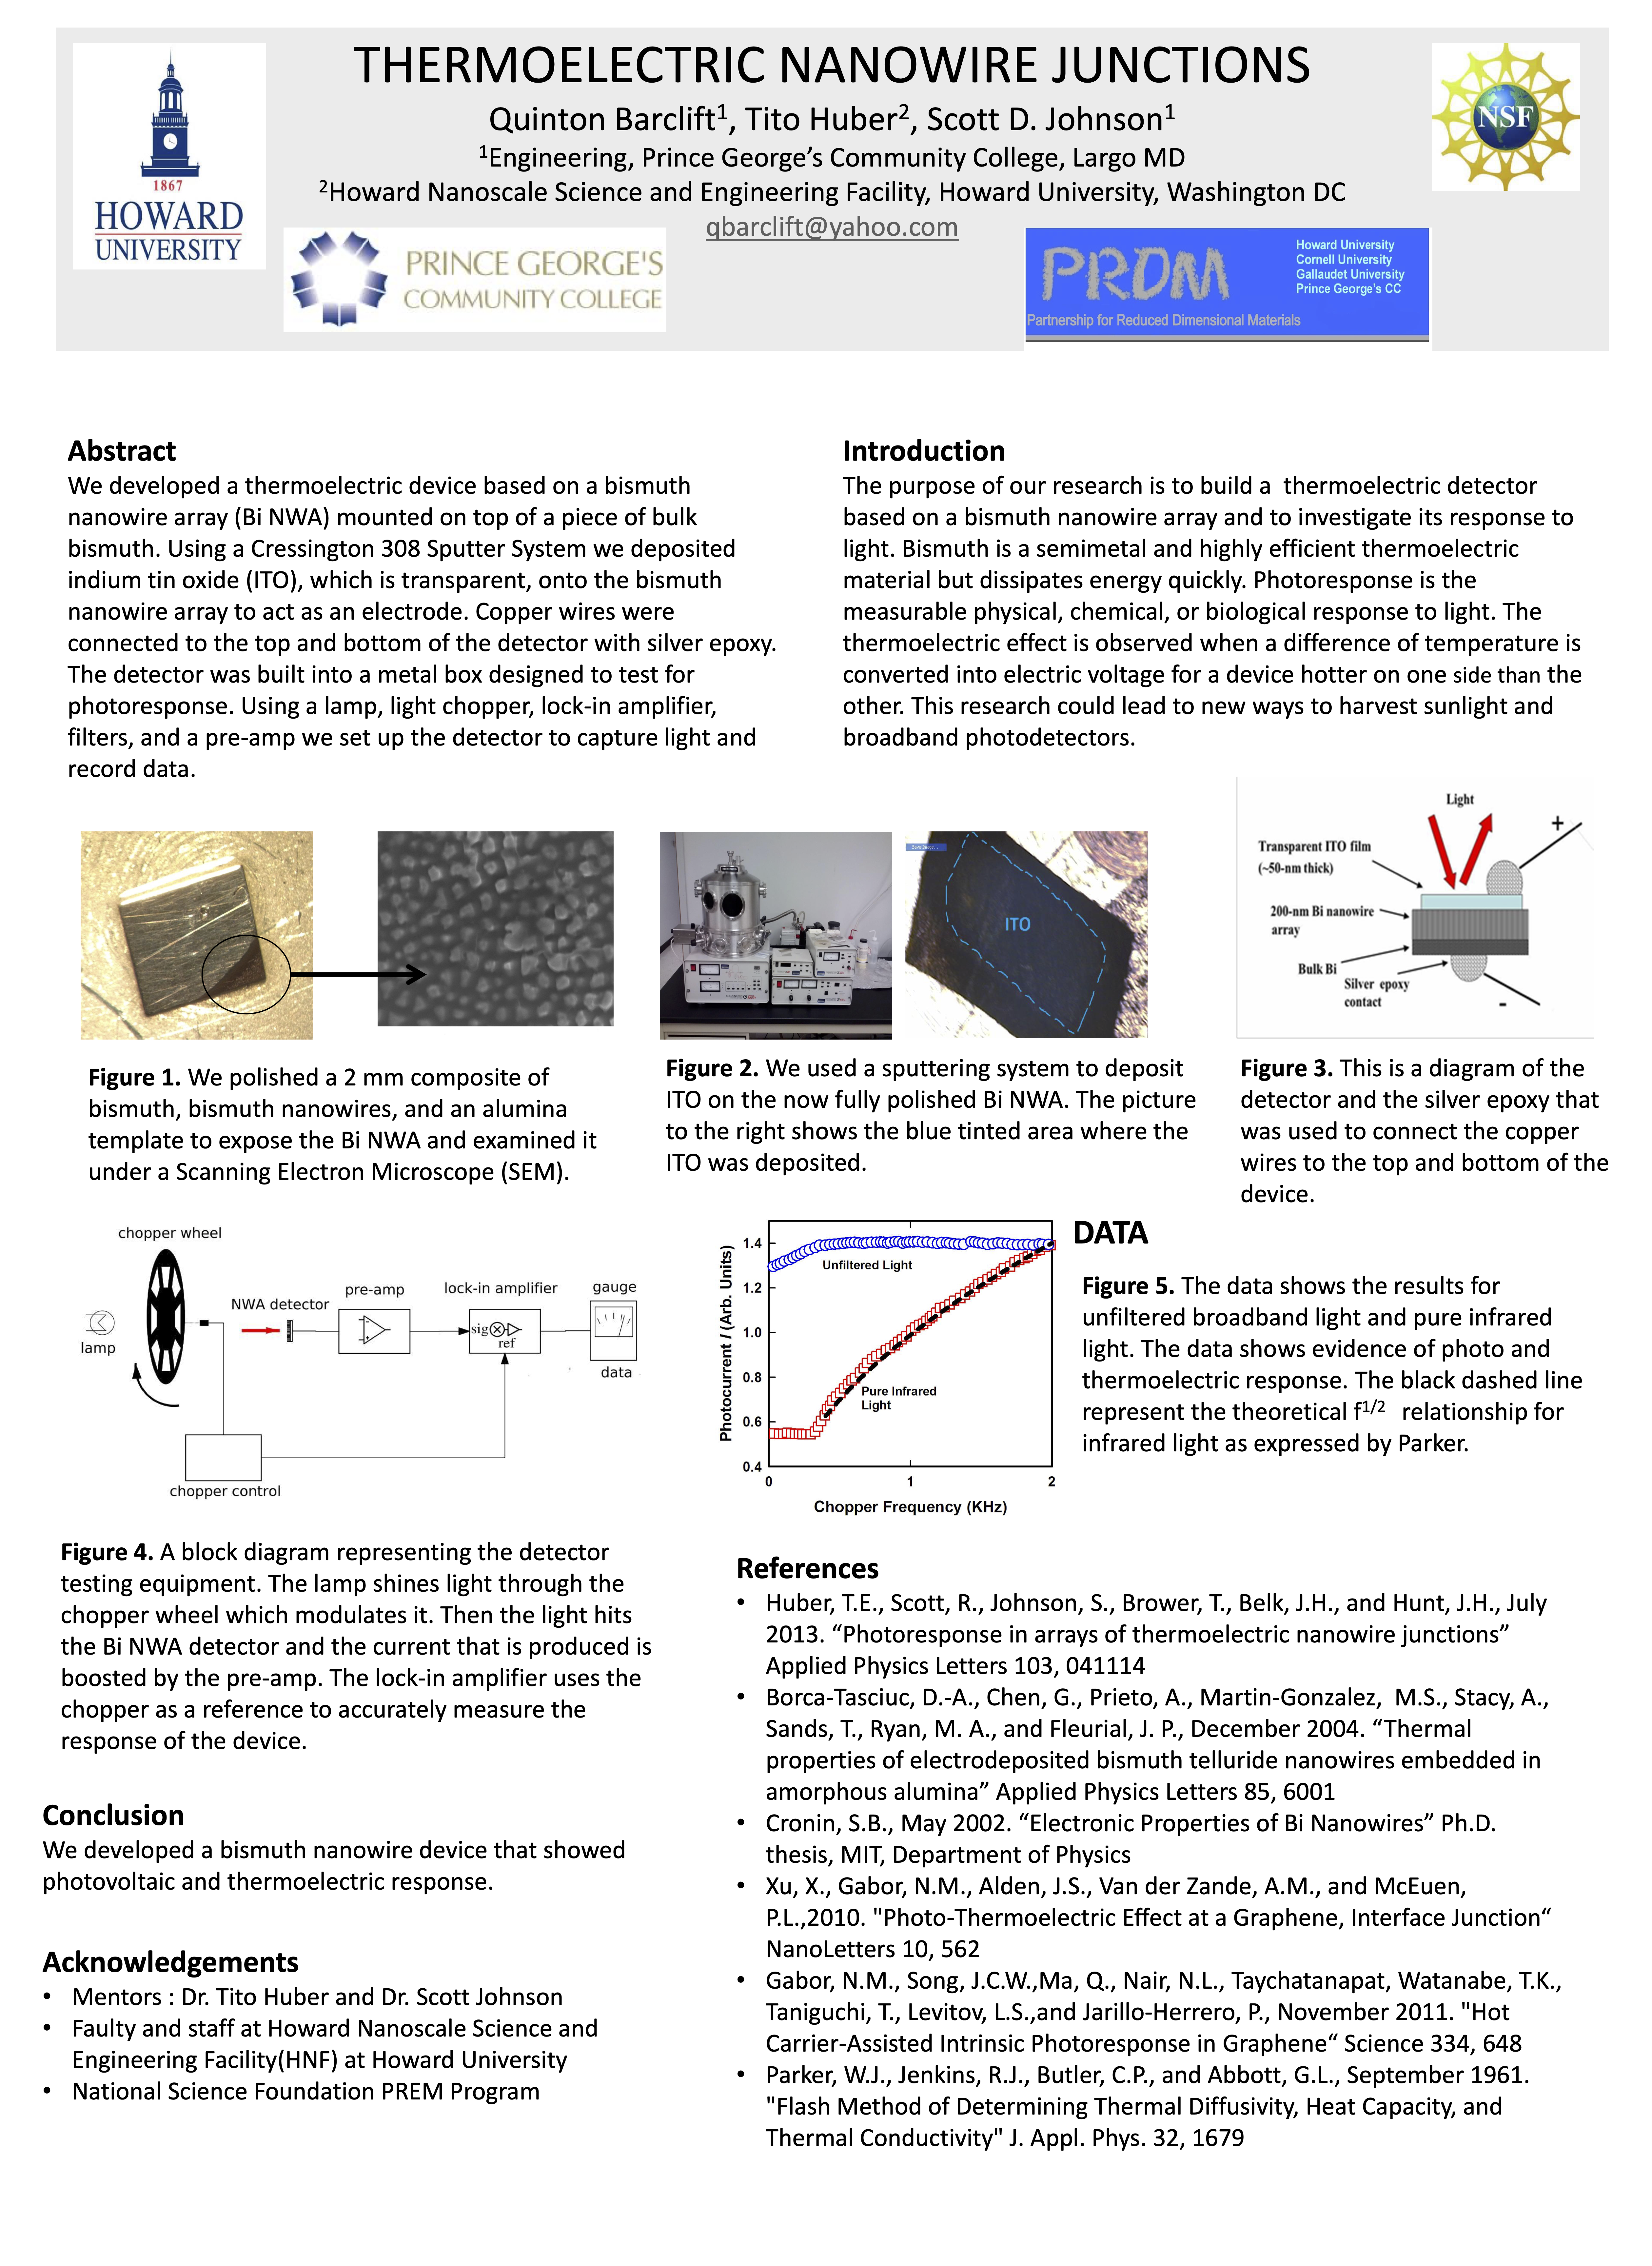 This presentation discusses one application of nanotechnology. As a bonus this presentation also included an example of a detector testing system that is a classic chopping method for getting small signal response which is important in engineering beyond nanotechnology.